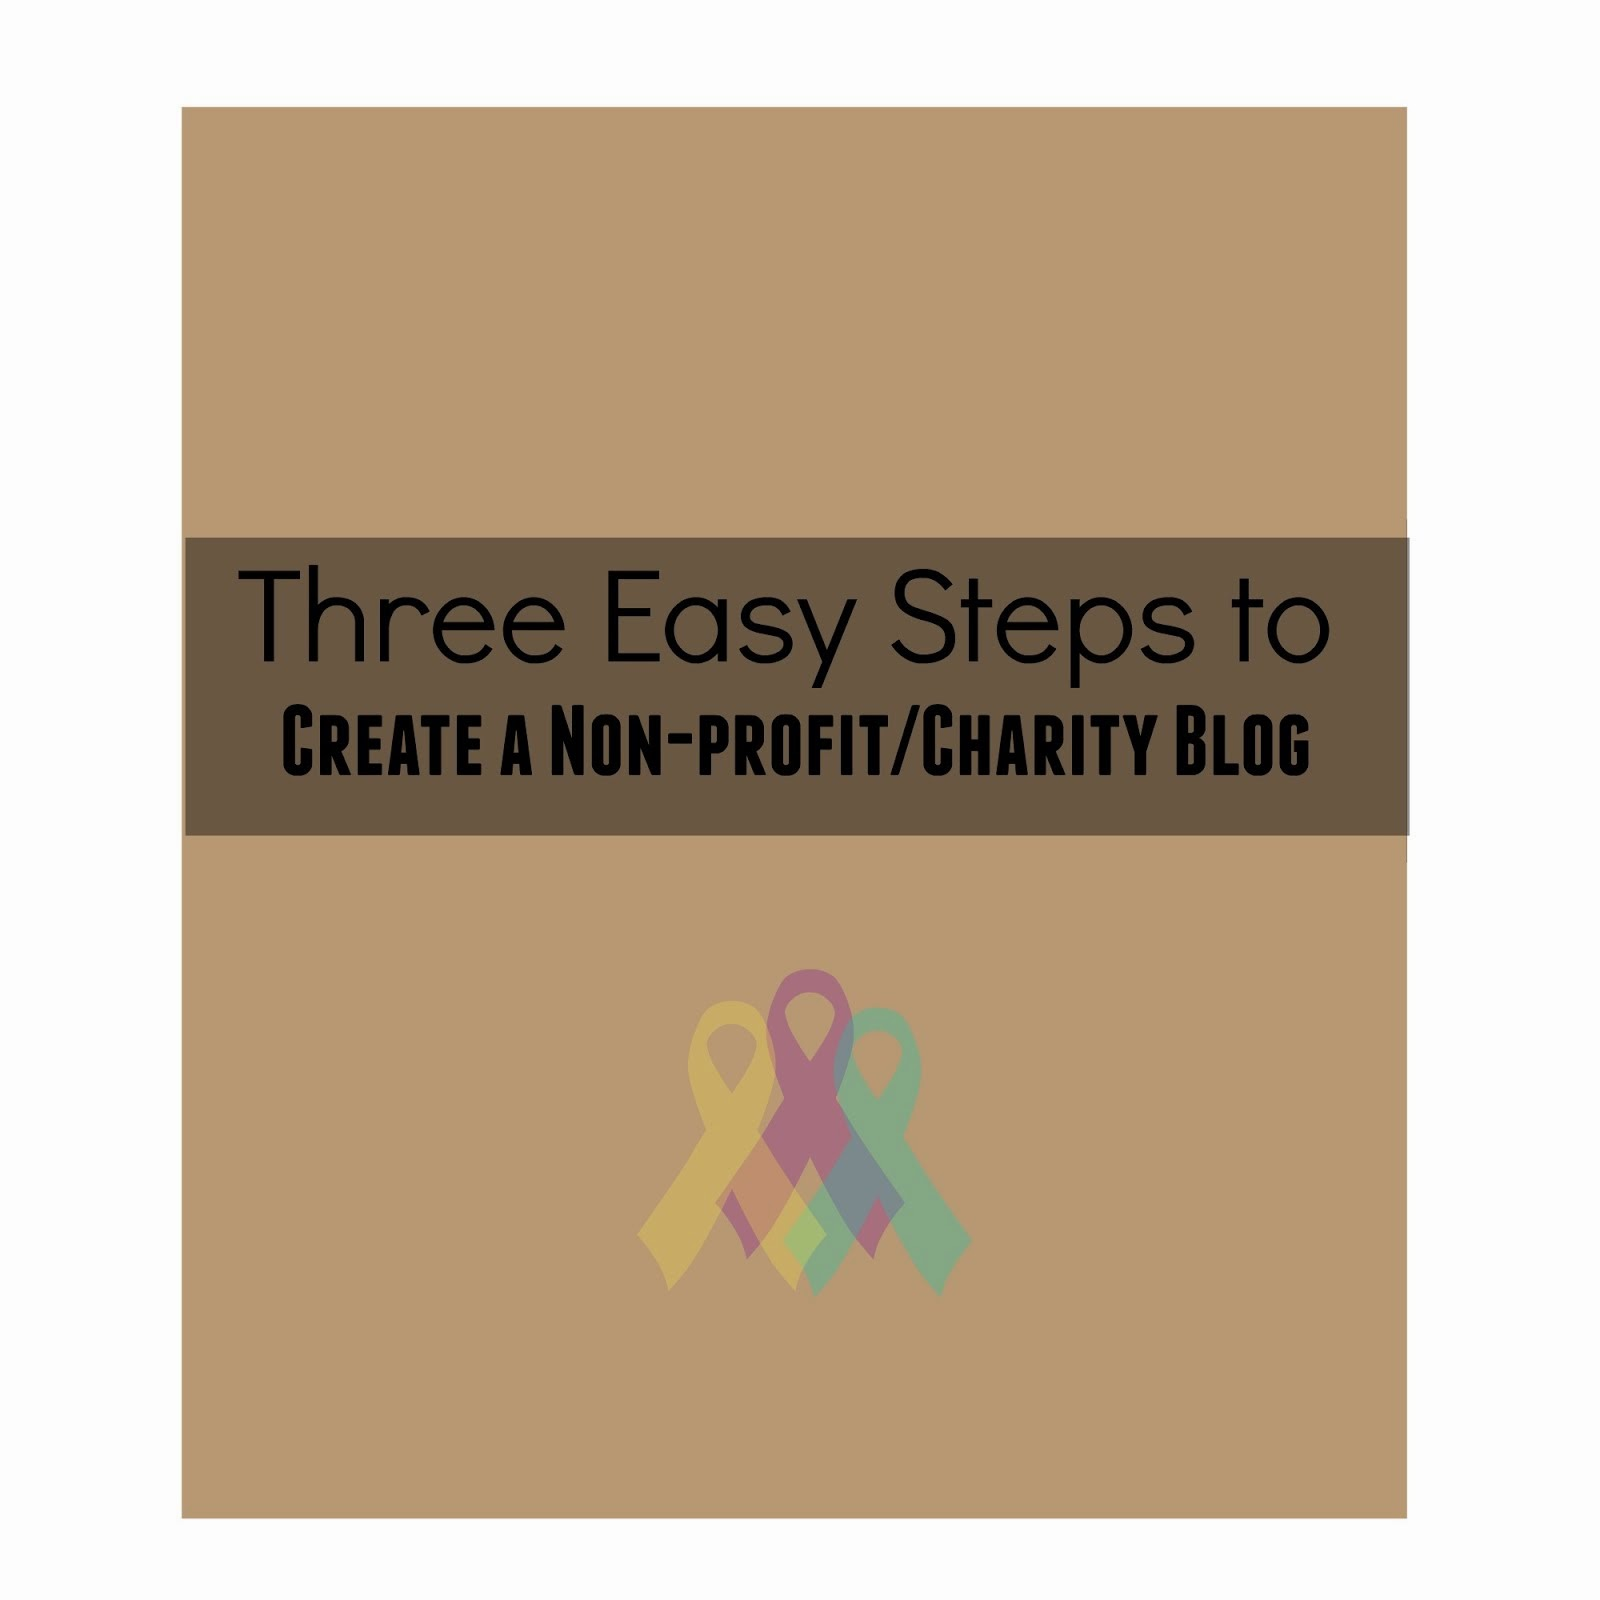 Starting A Non-Profit Or Charity Website/Blog: How To